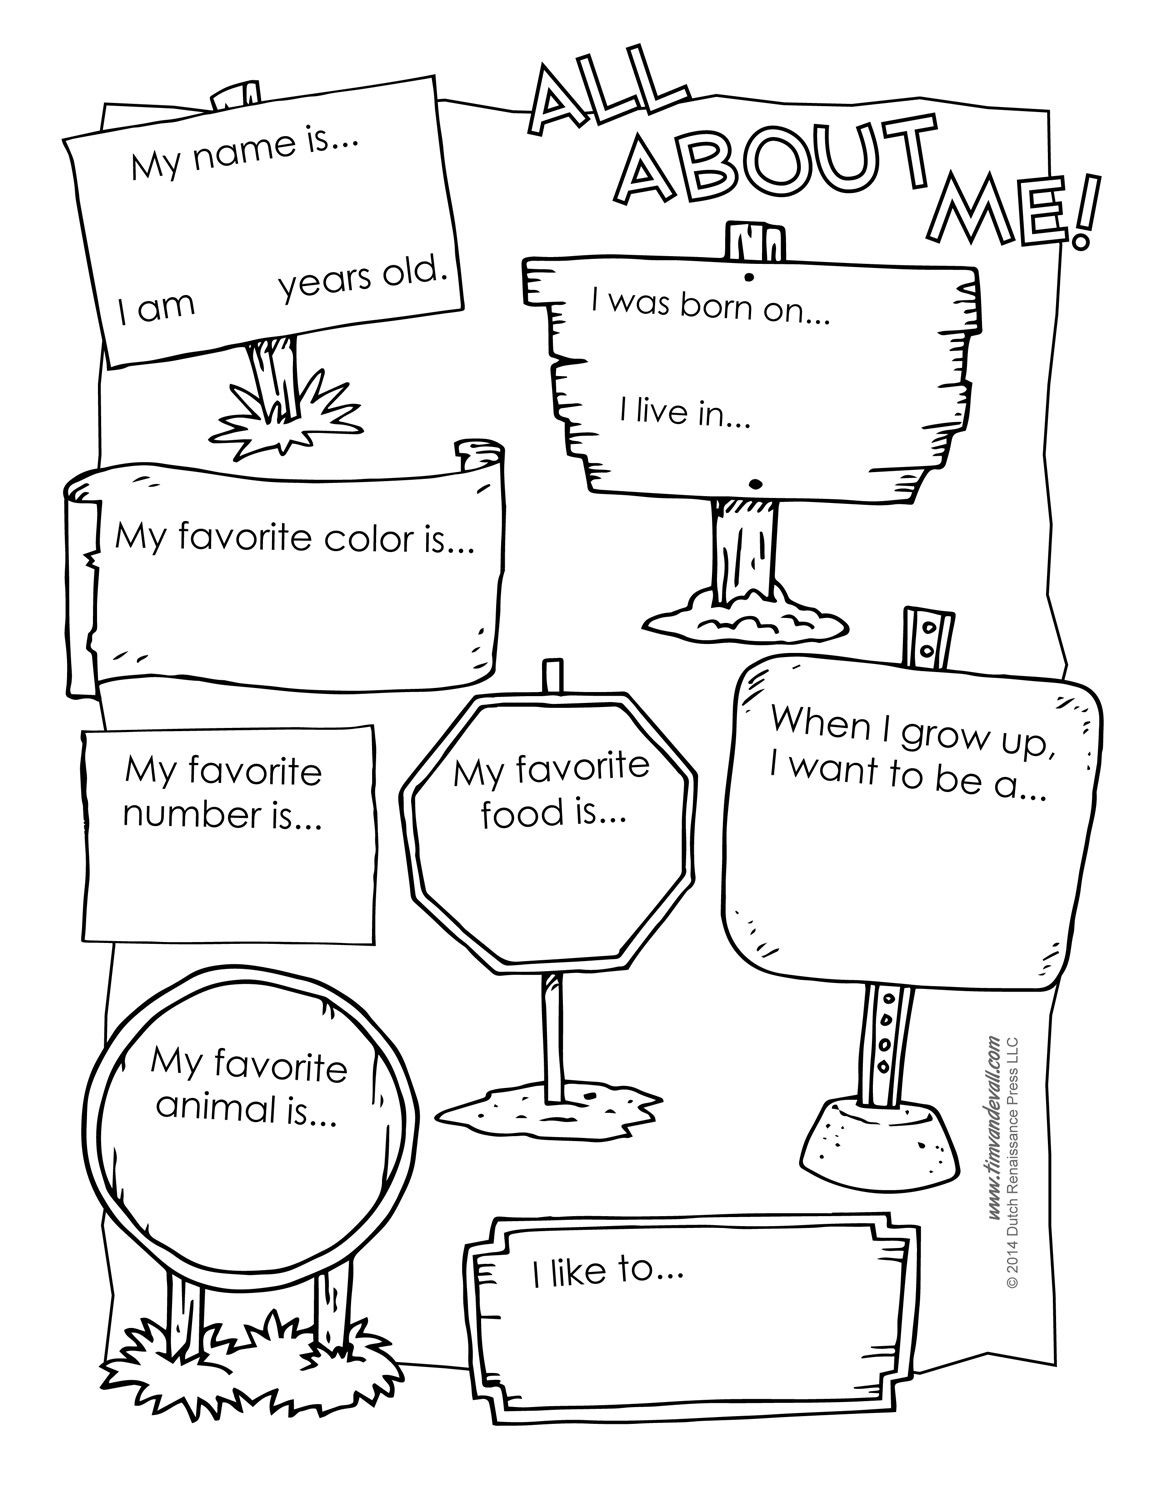 All About Me Printable Worksheet